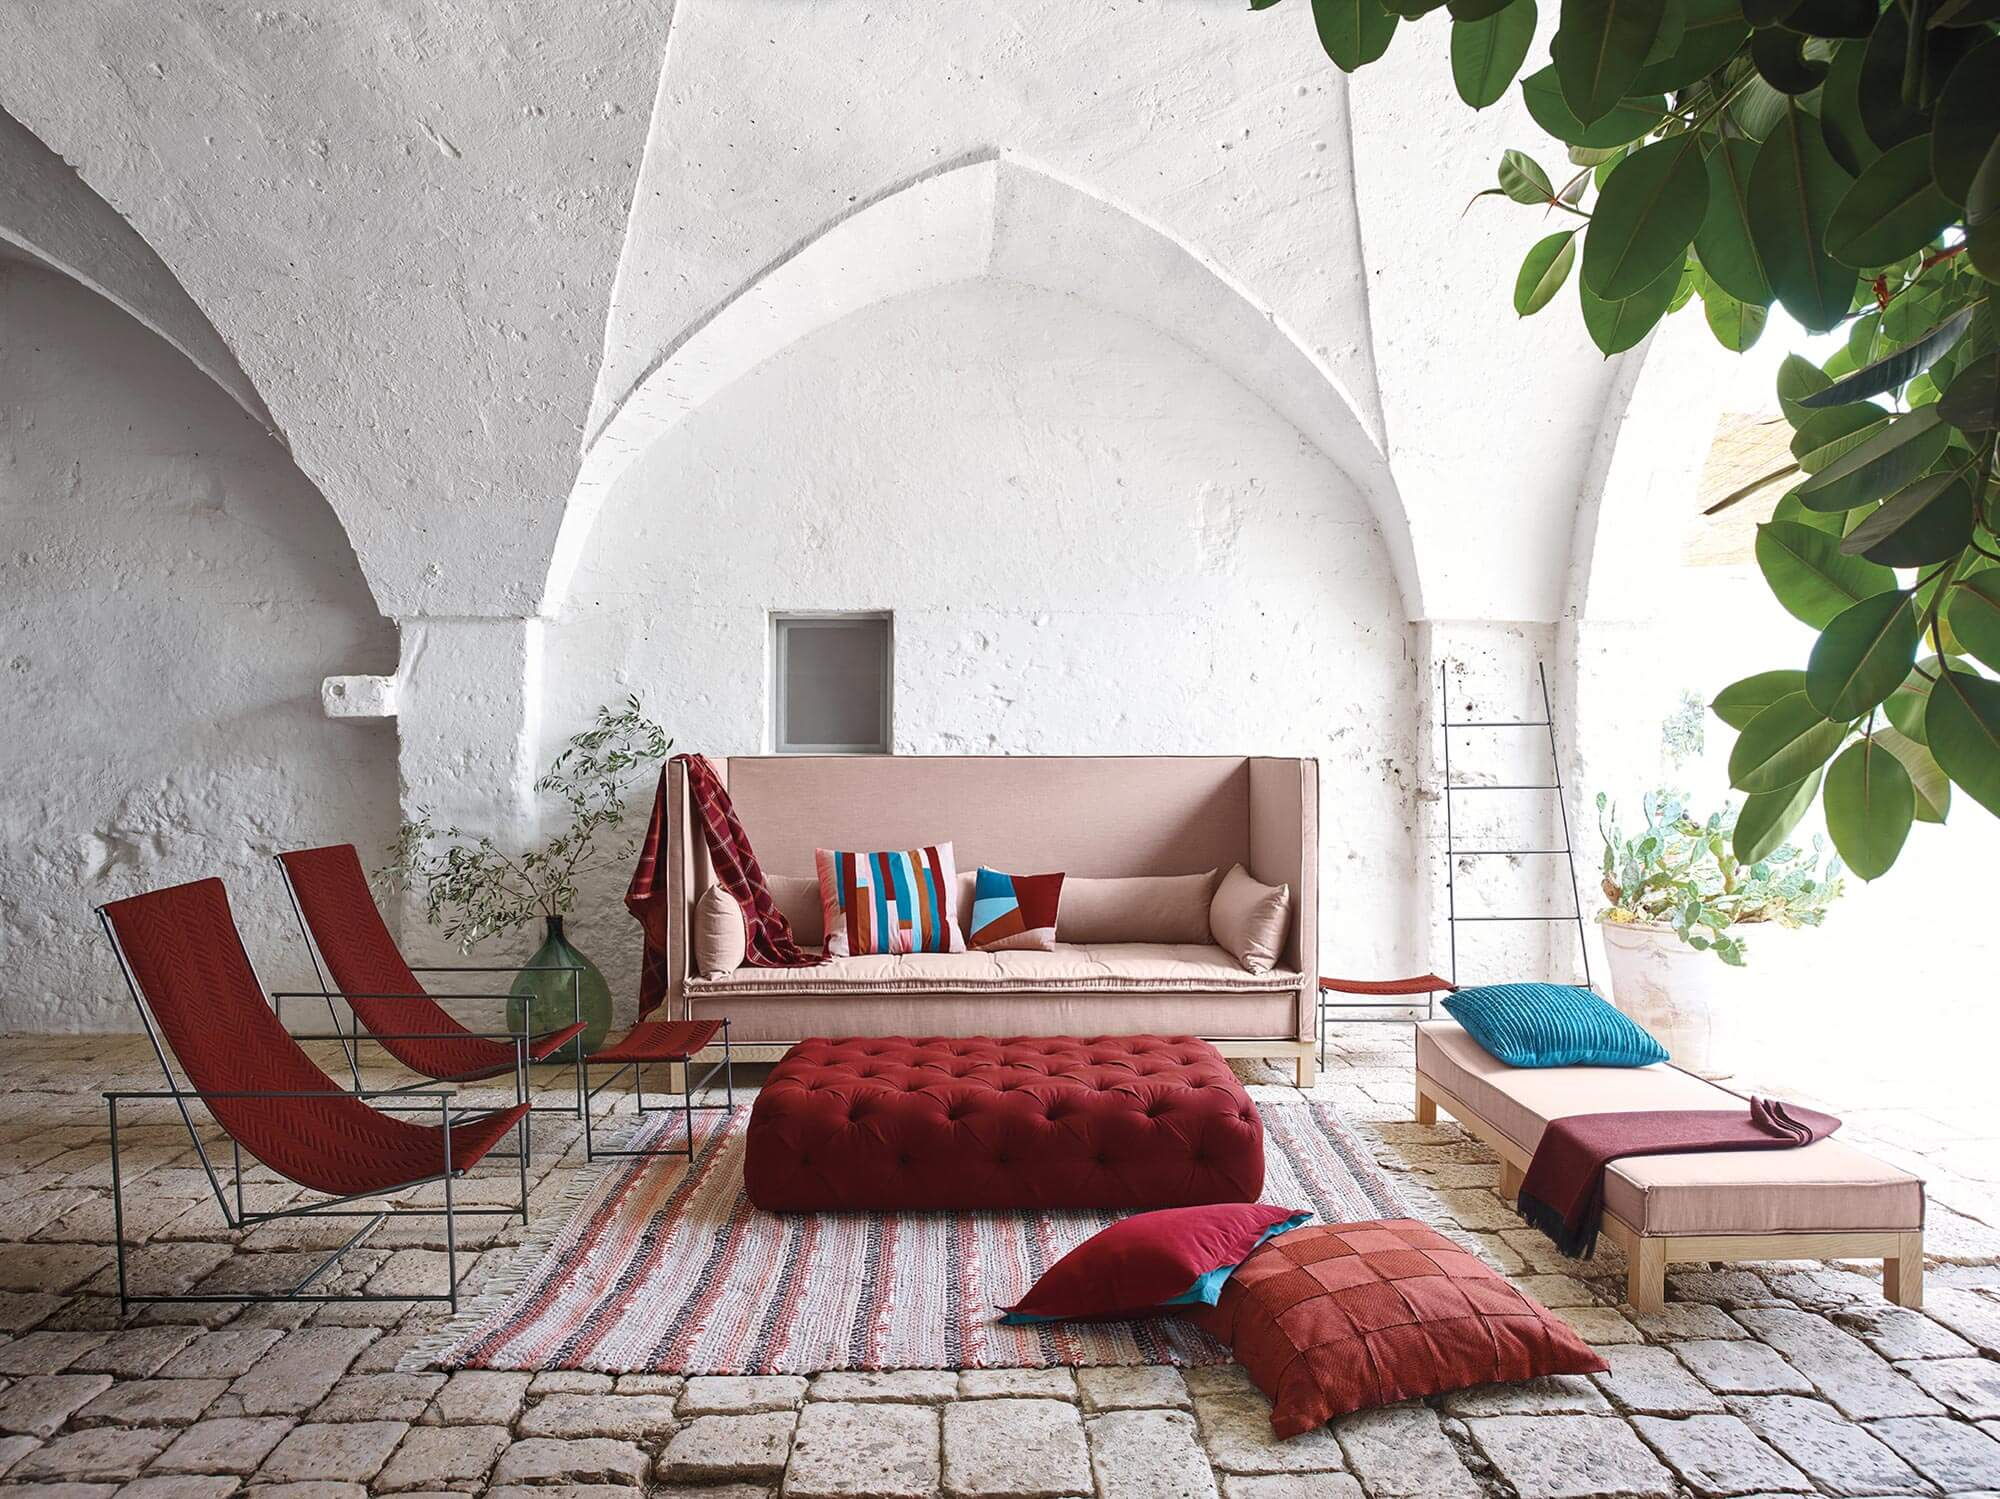 sofa fabric cleaner uk vibe magazine fabrics for the home indoor outdoor sunbrella a living room with large chairs and tufted ottoman in hues browse how to clean